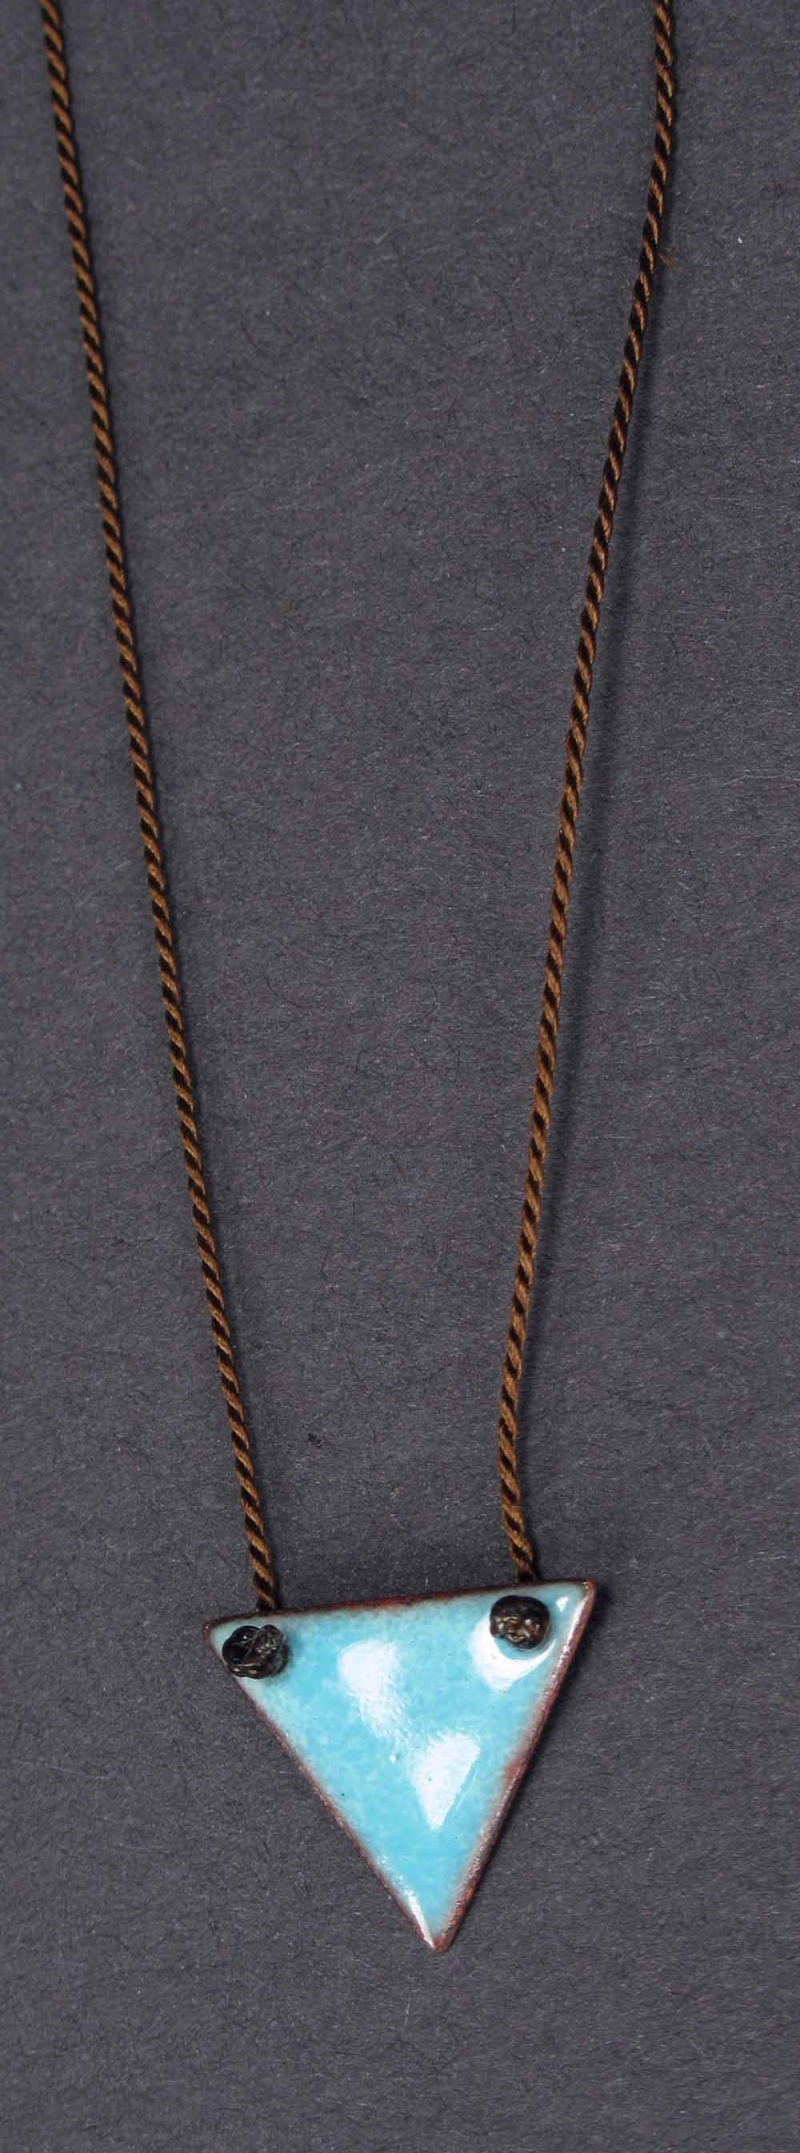 Copper Enamel Triangle Necklace - Small